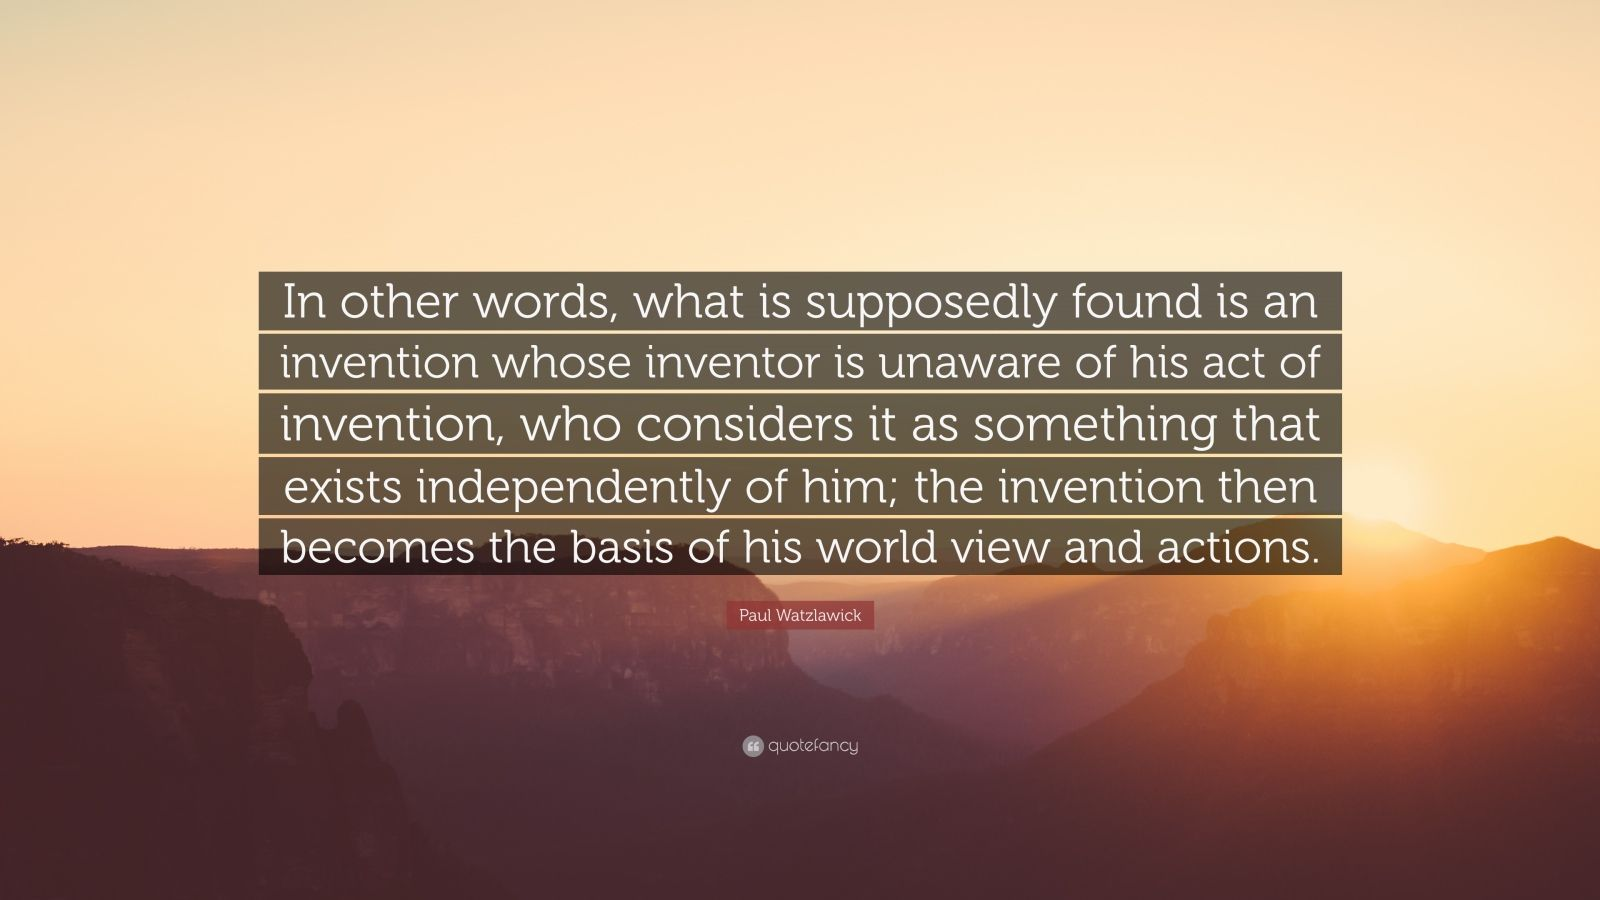 """Paul Watzlawick Quote: """"In other words, what is supposedly found is an invention whose inventor is unaware of his act of invention, who considers it as something that exists independently of him; the invention then becomes the basis of his world view and actions."""""""